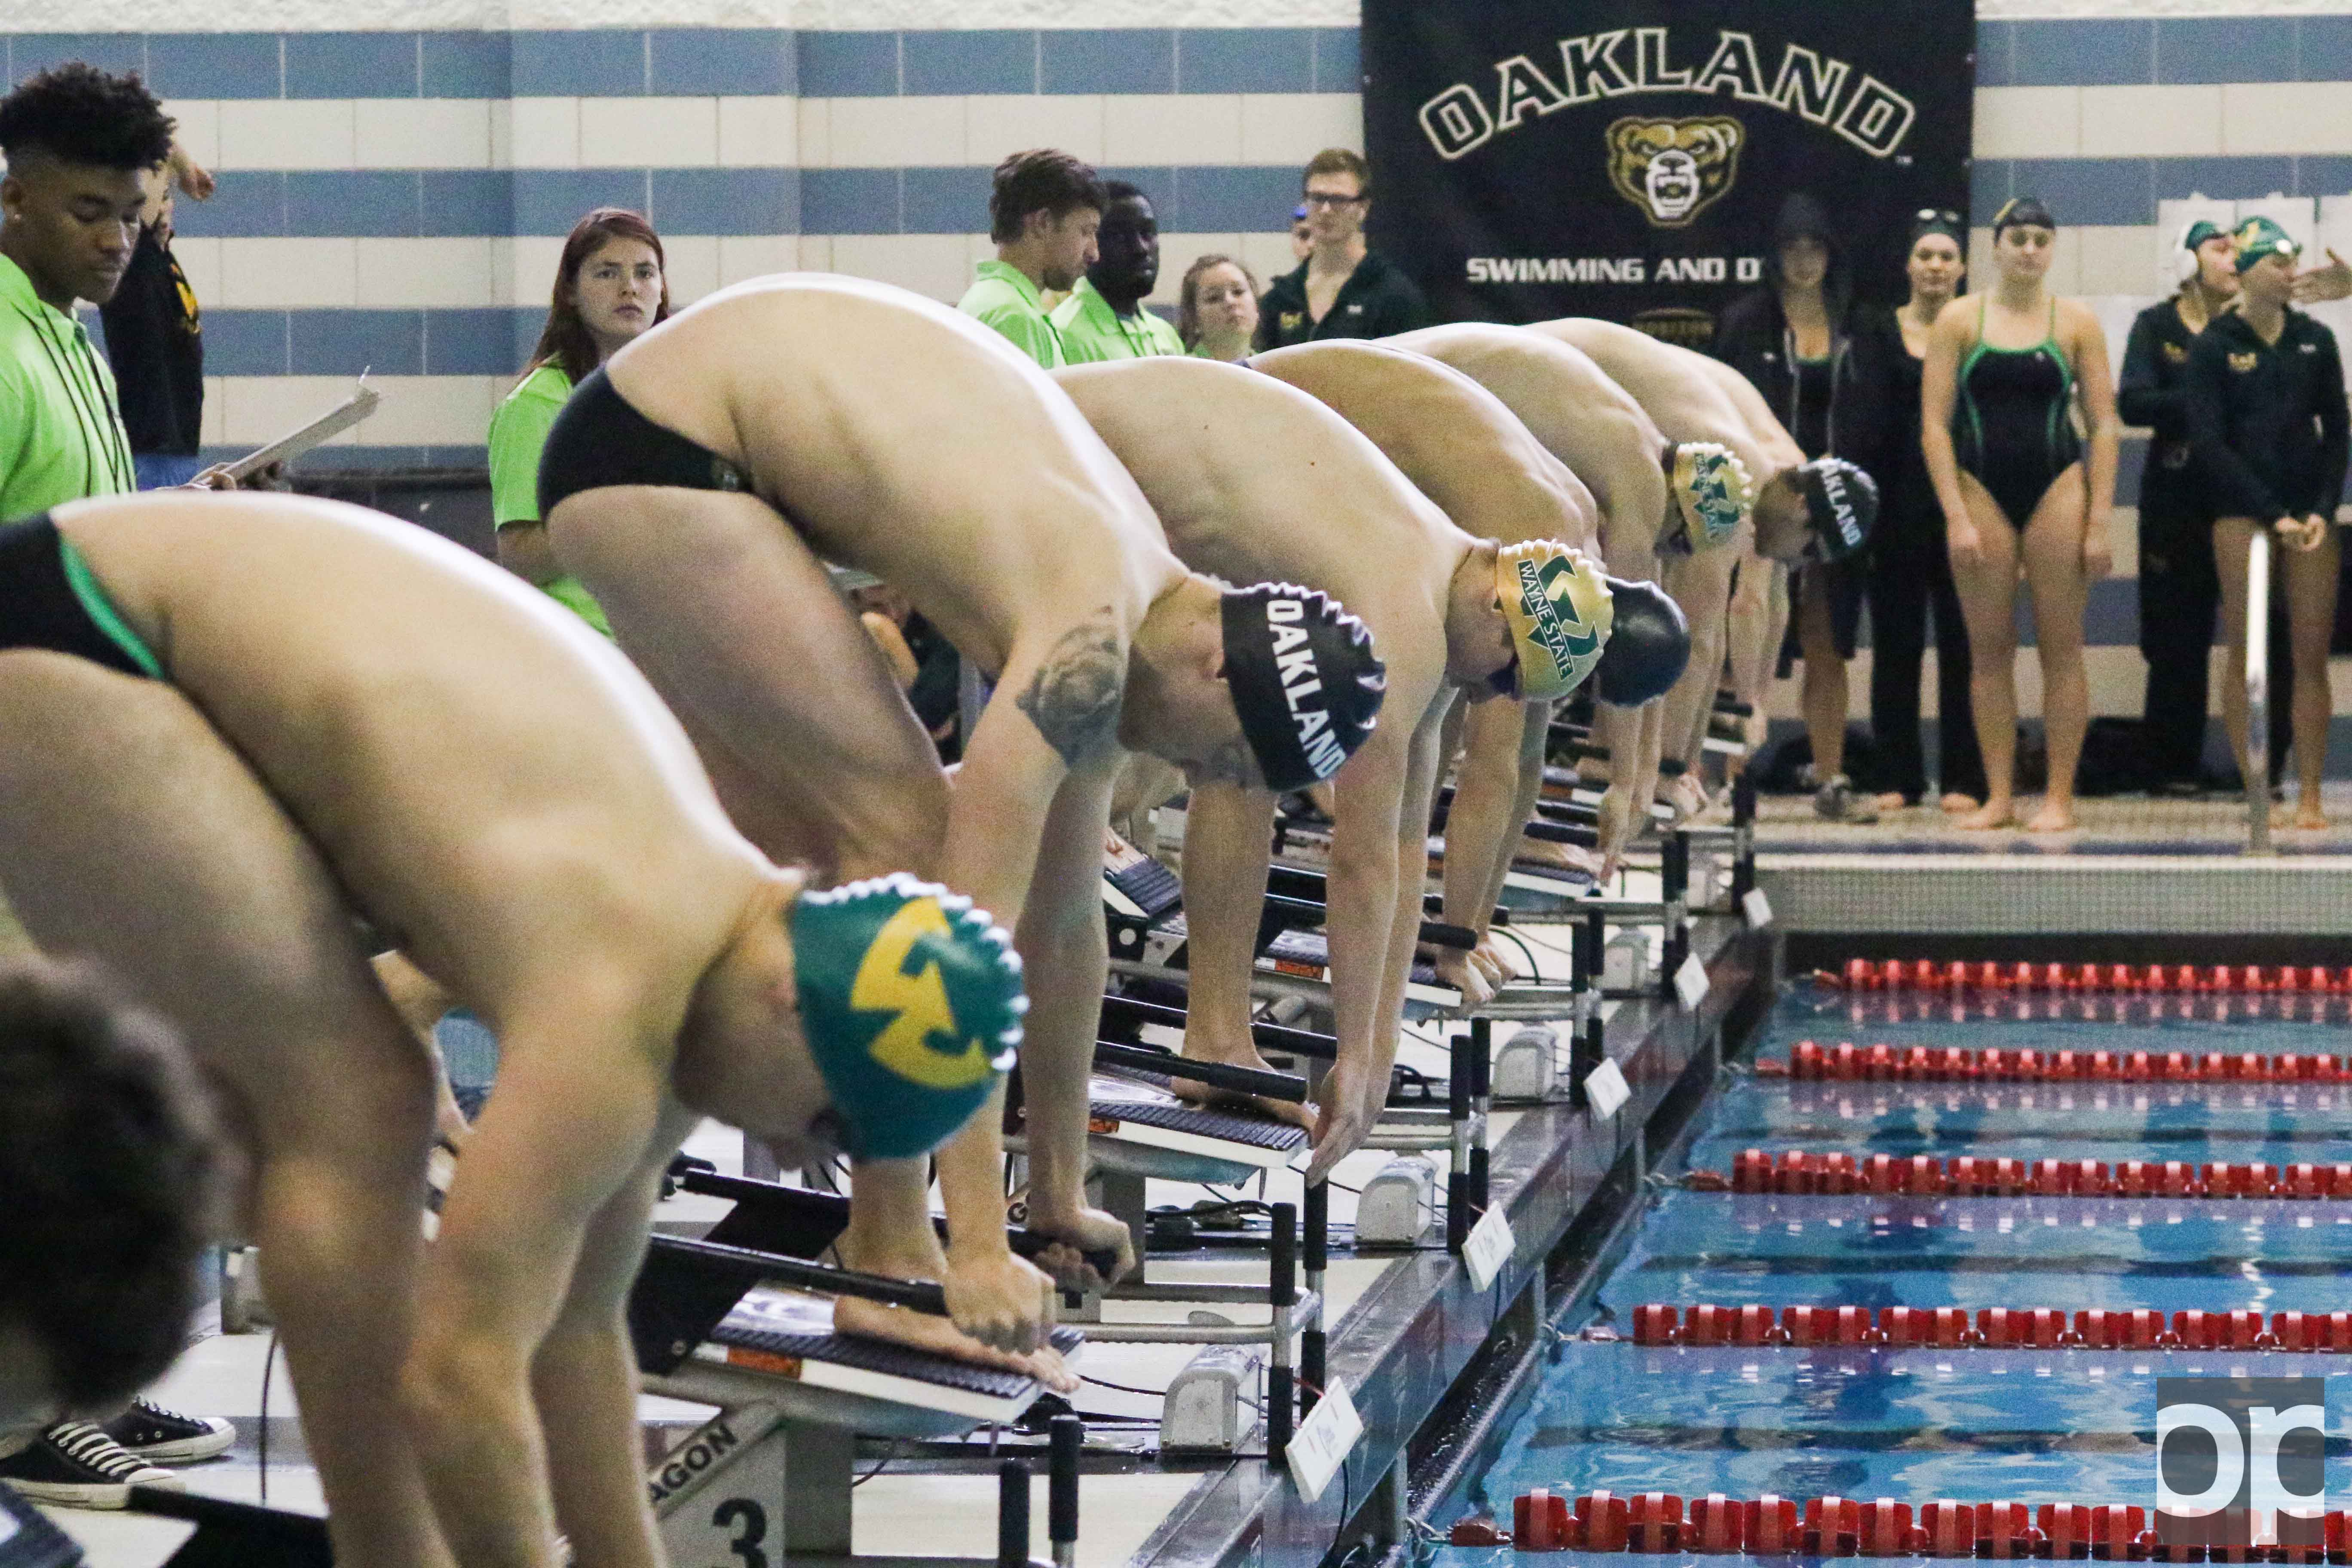 Oakland men's and women's swim and dive teams beat Wayne State at the home opener on Saturday, Oct. 29.